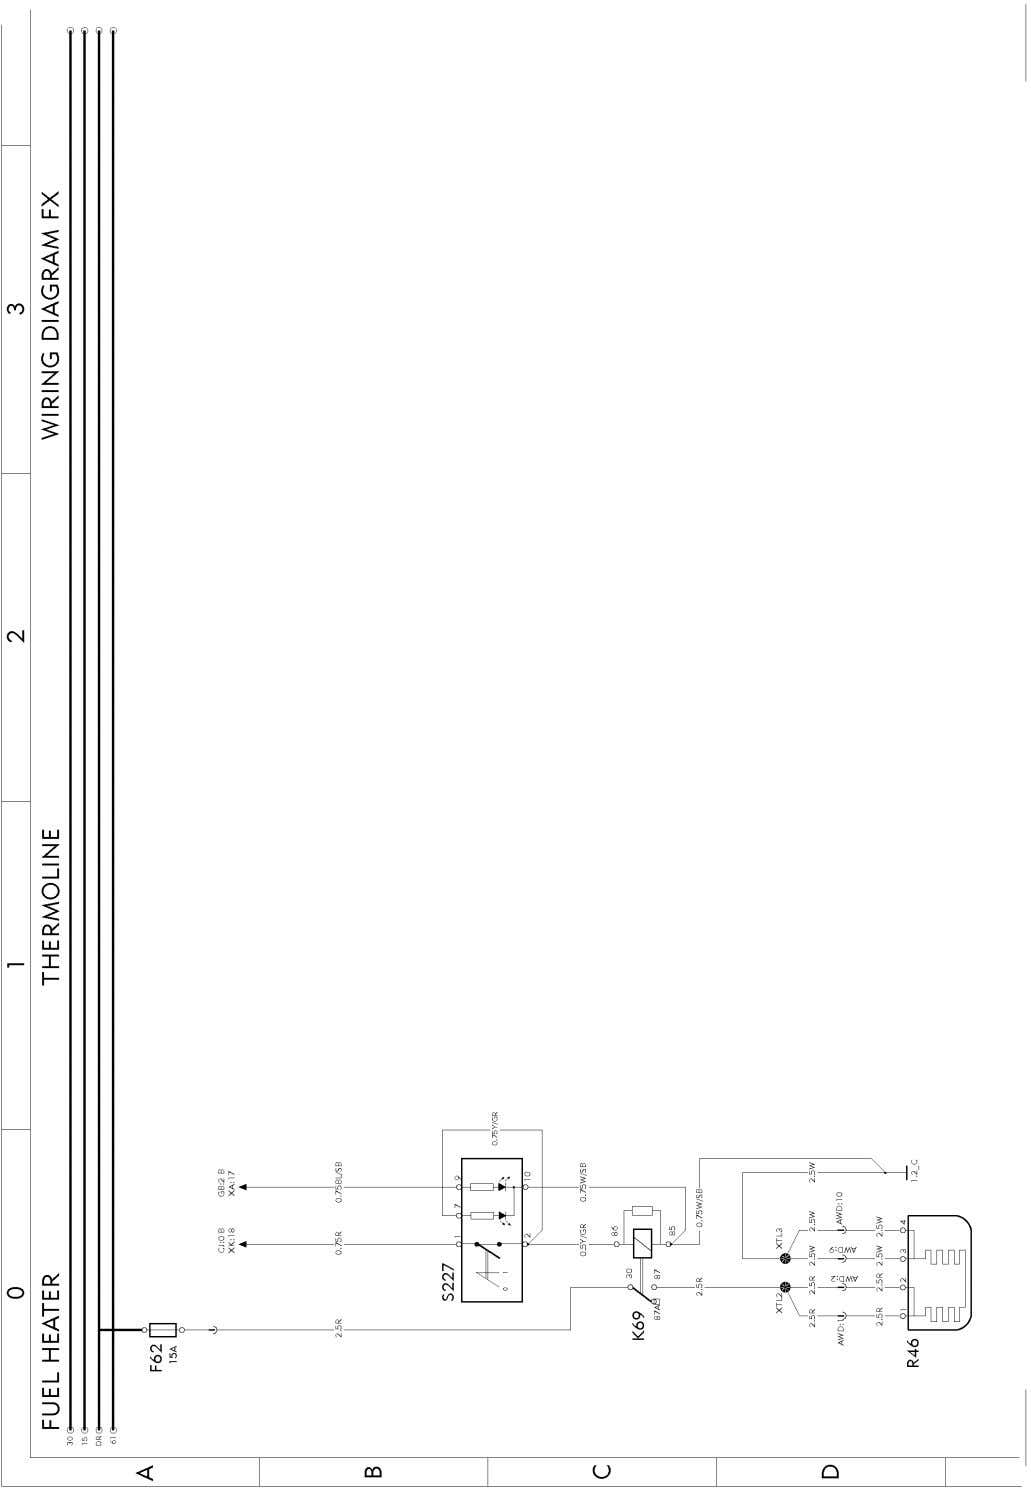 T3022002 Wiring diagram Page 59 (298)